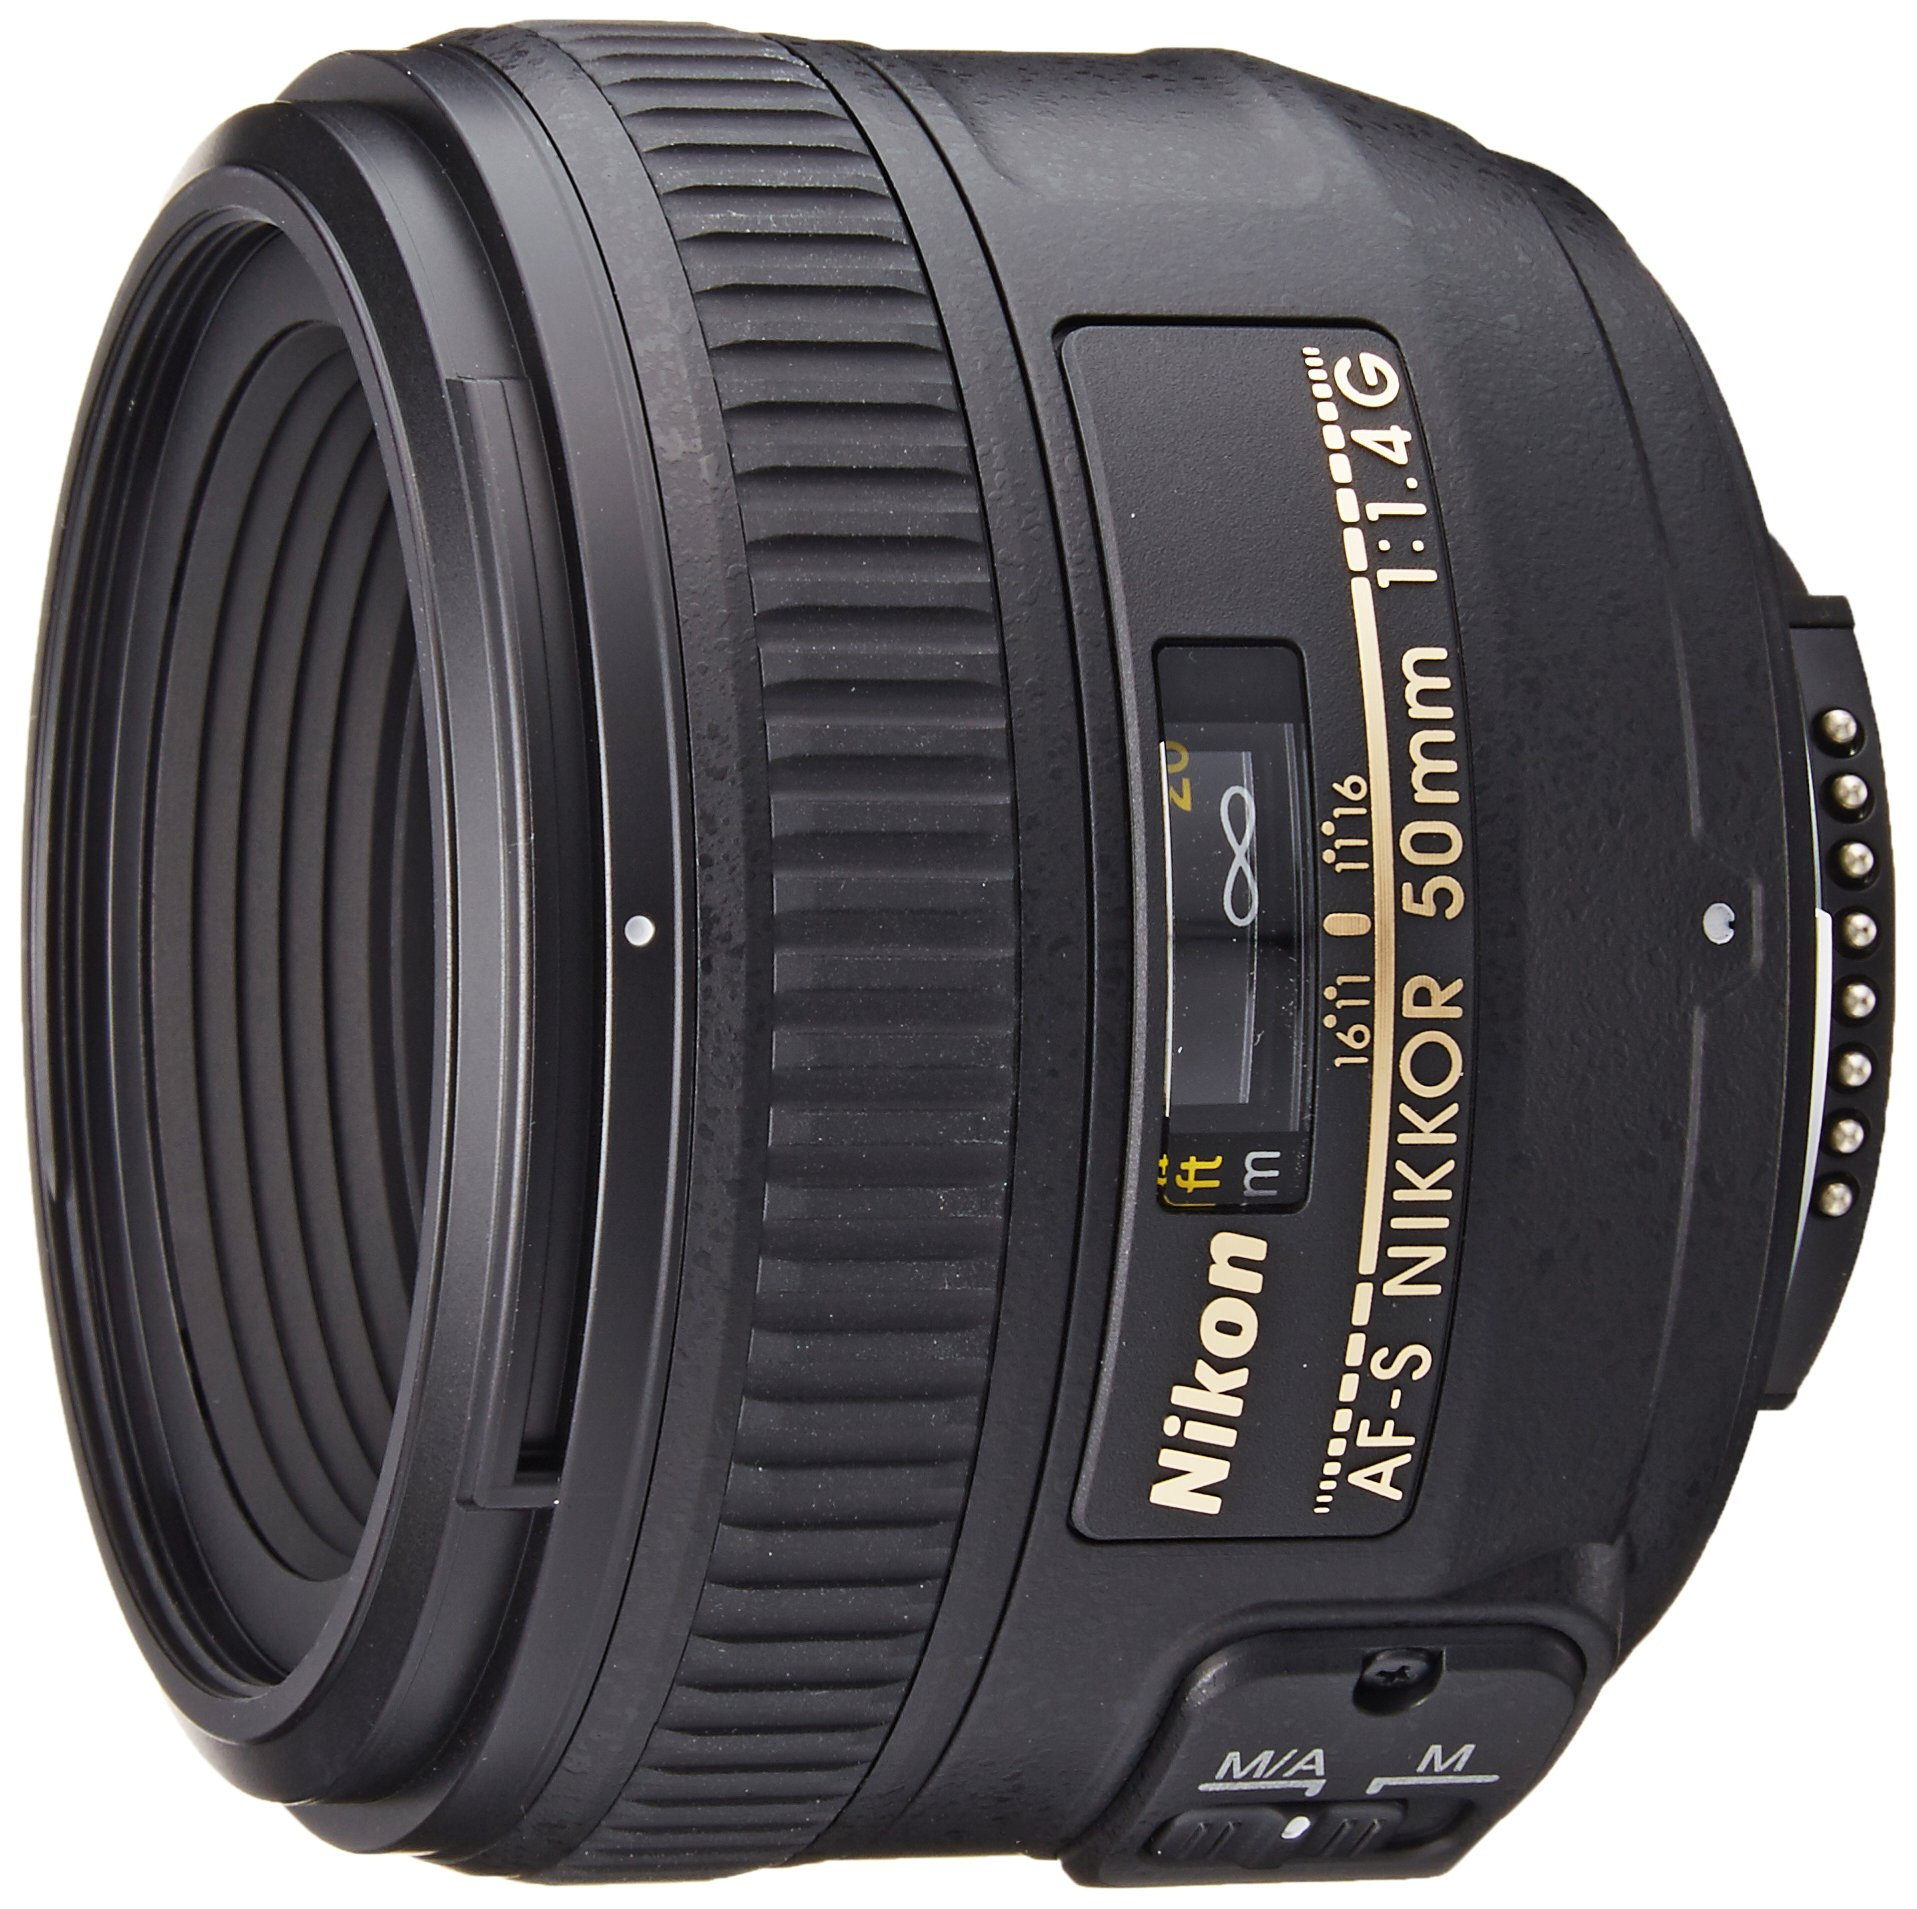 Nikon AF-S FX NIKKOR 50mm f/1.4G Lens with Auto Focus for Nikon DSLR Cameras by Nikon